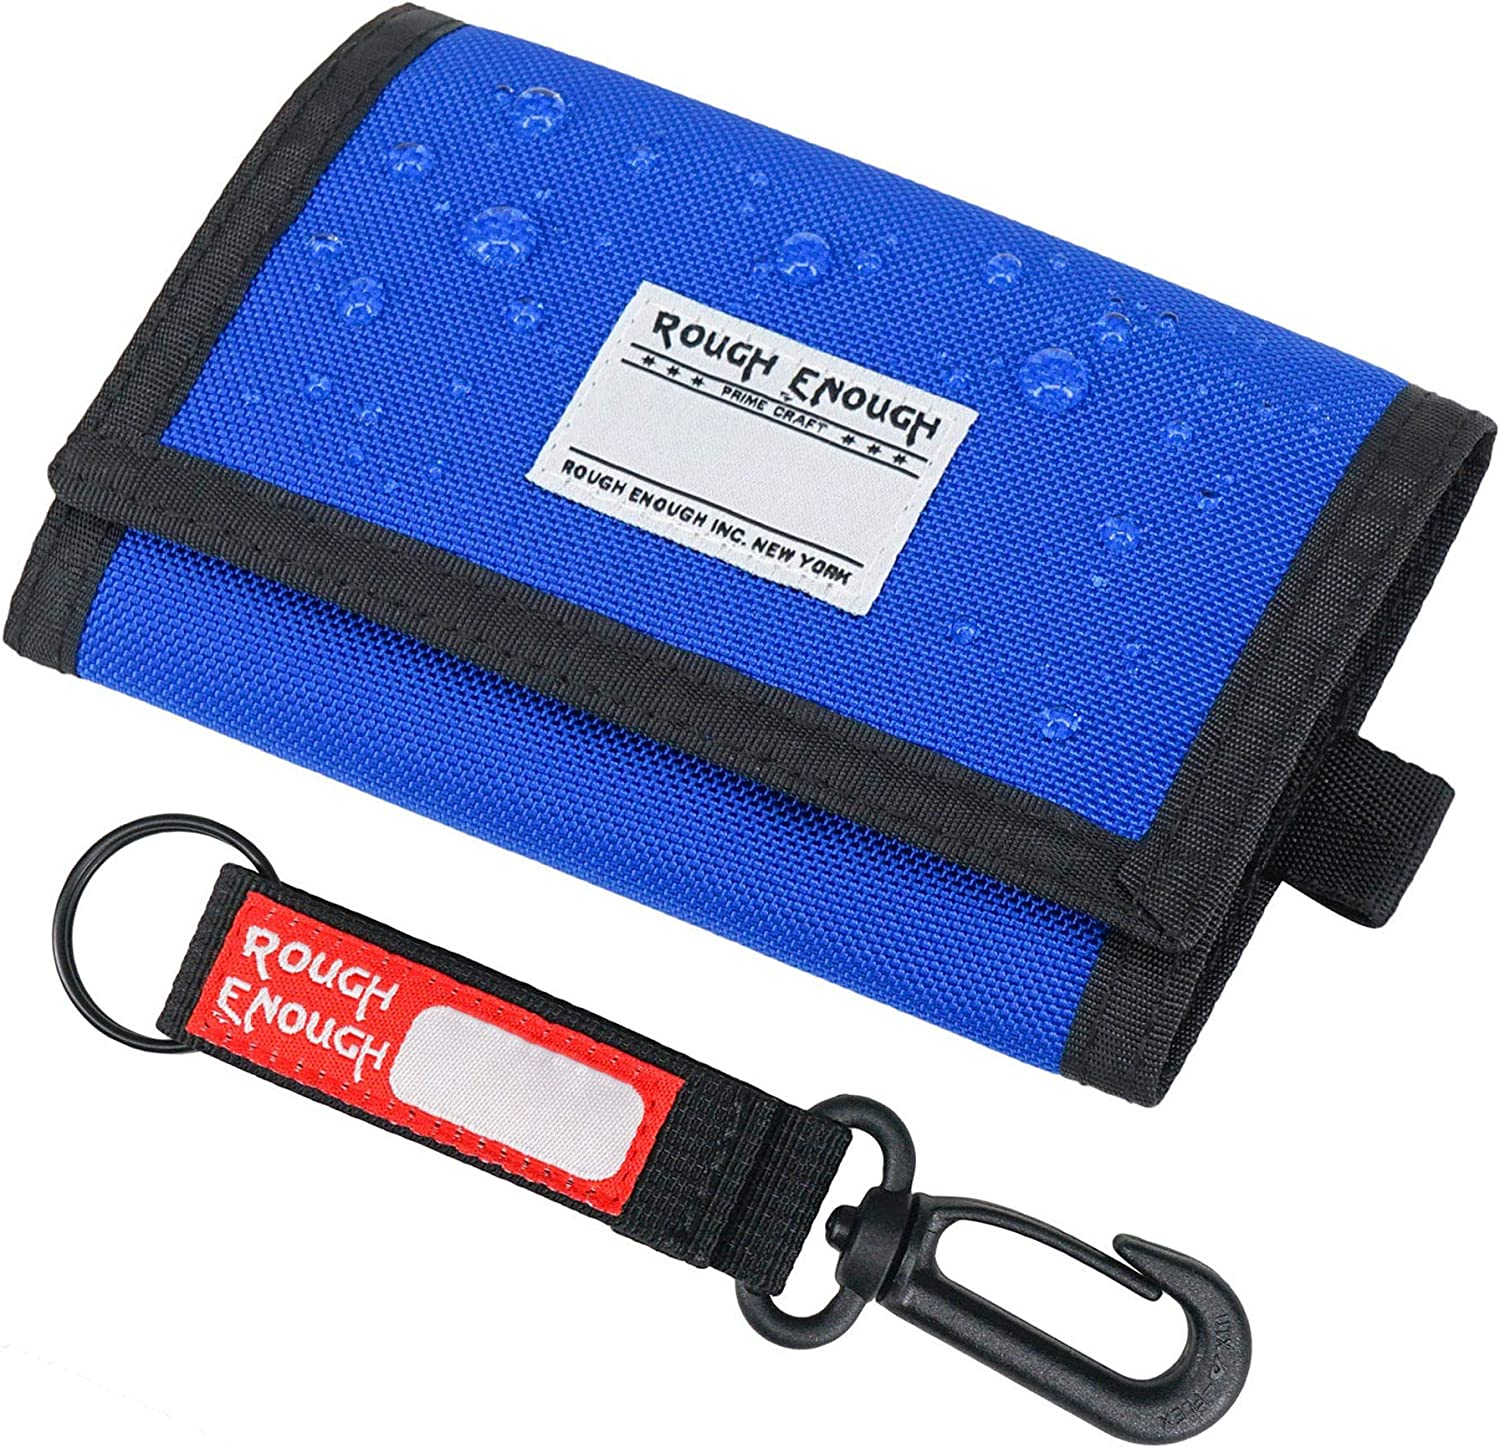 Rough Enough Blue Kids Wallets for Teen Boys with Keychain Gifts